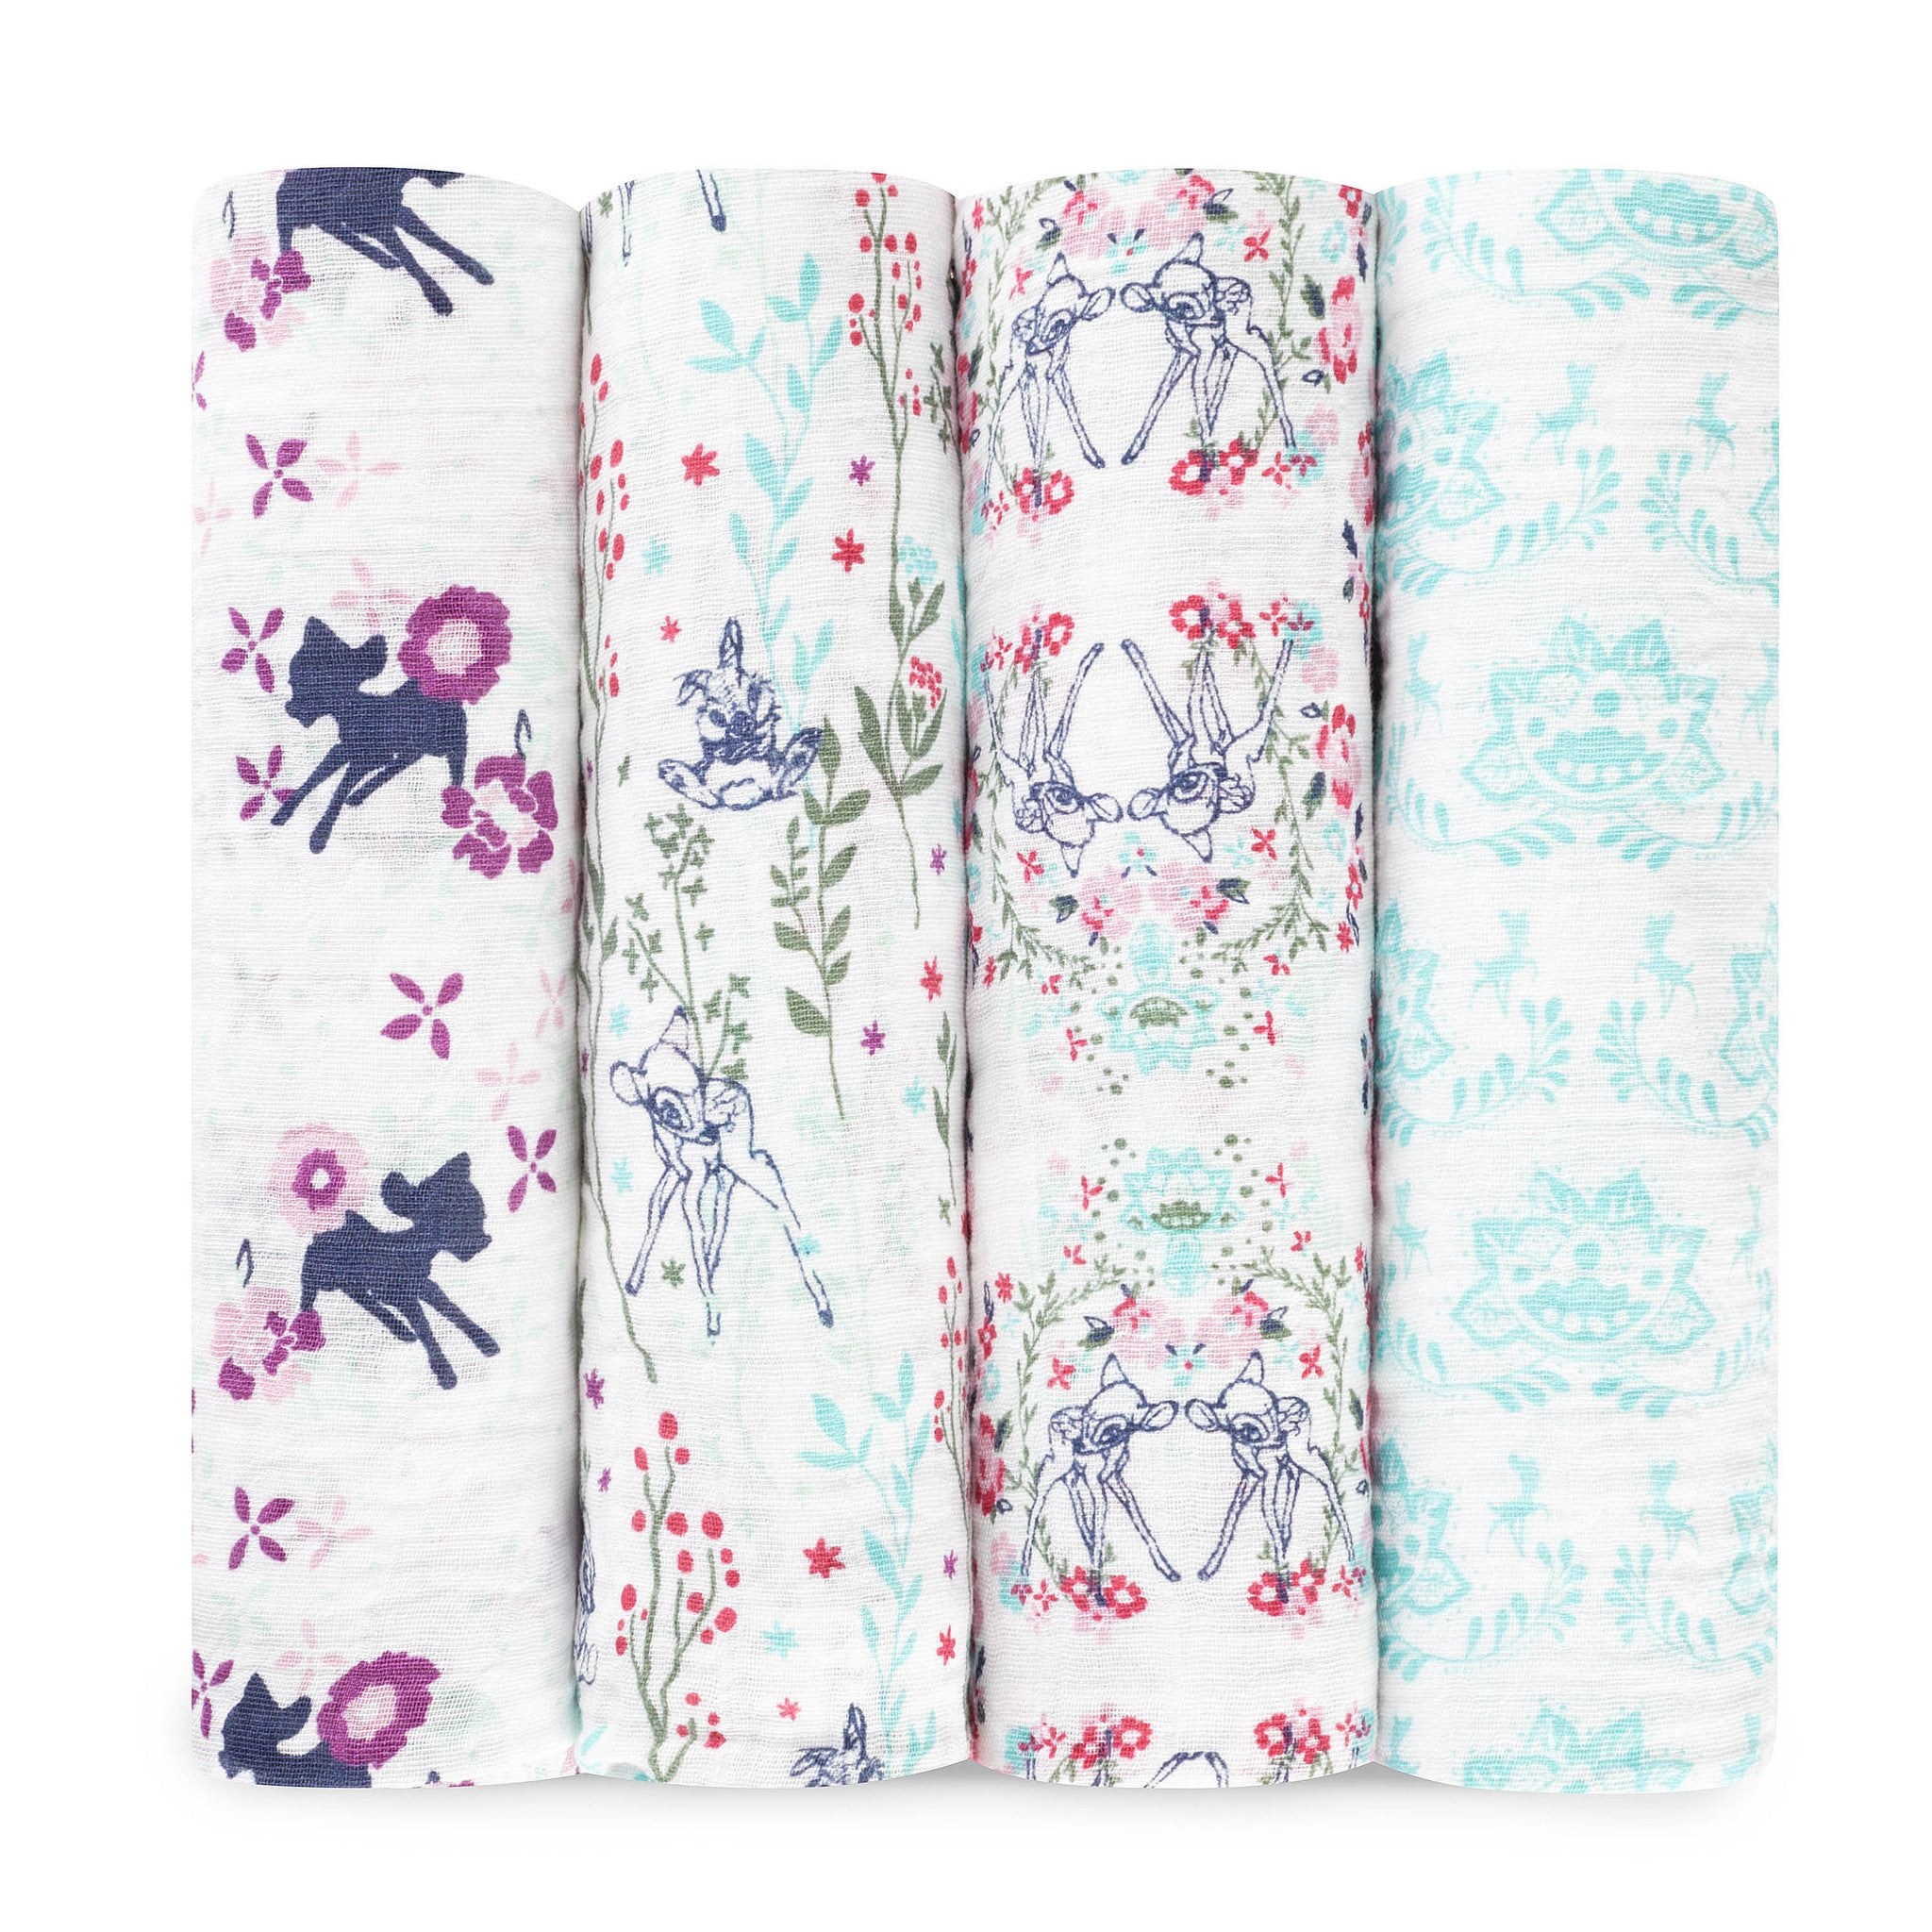 Bambi 4-Pack Disney Baby Swaddles - Aden & Anais - Little Citizens Boutique  - 1